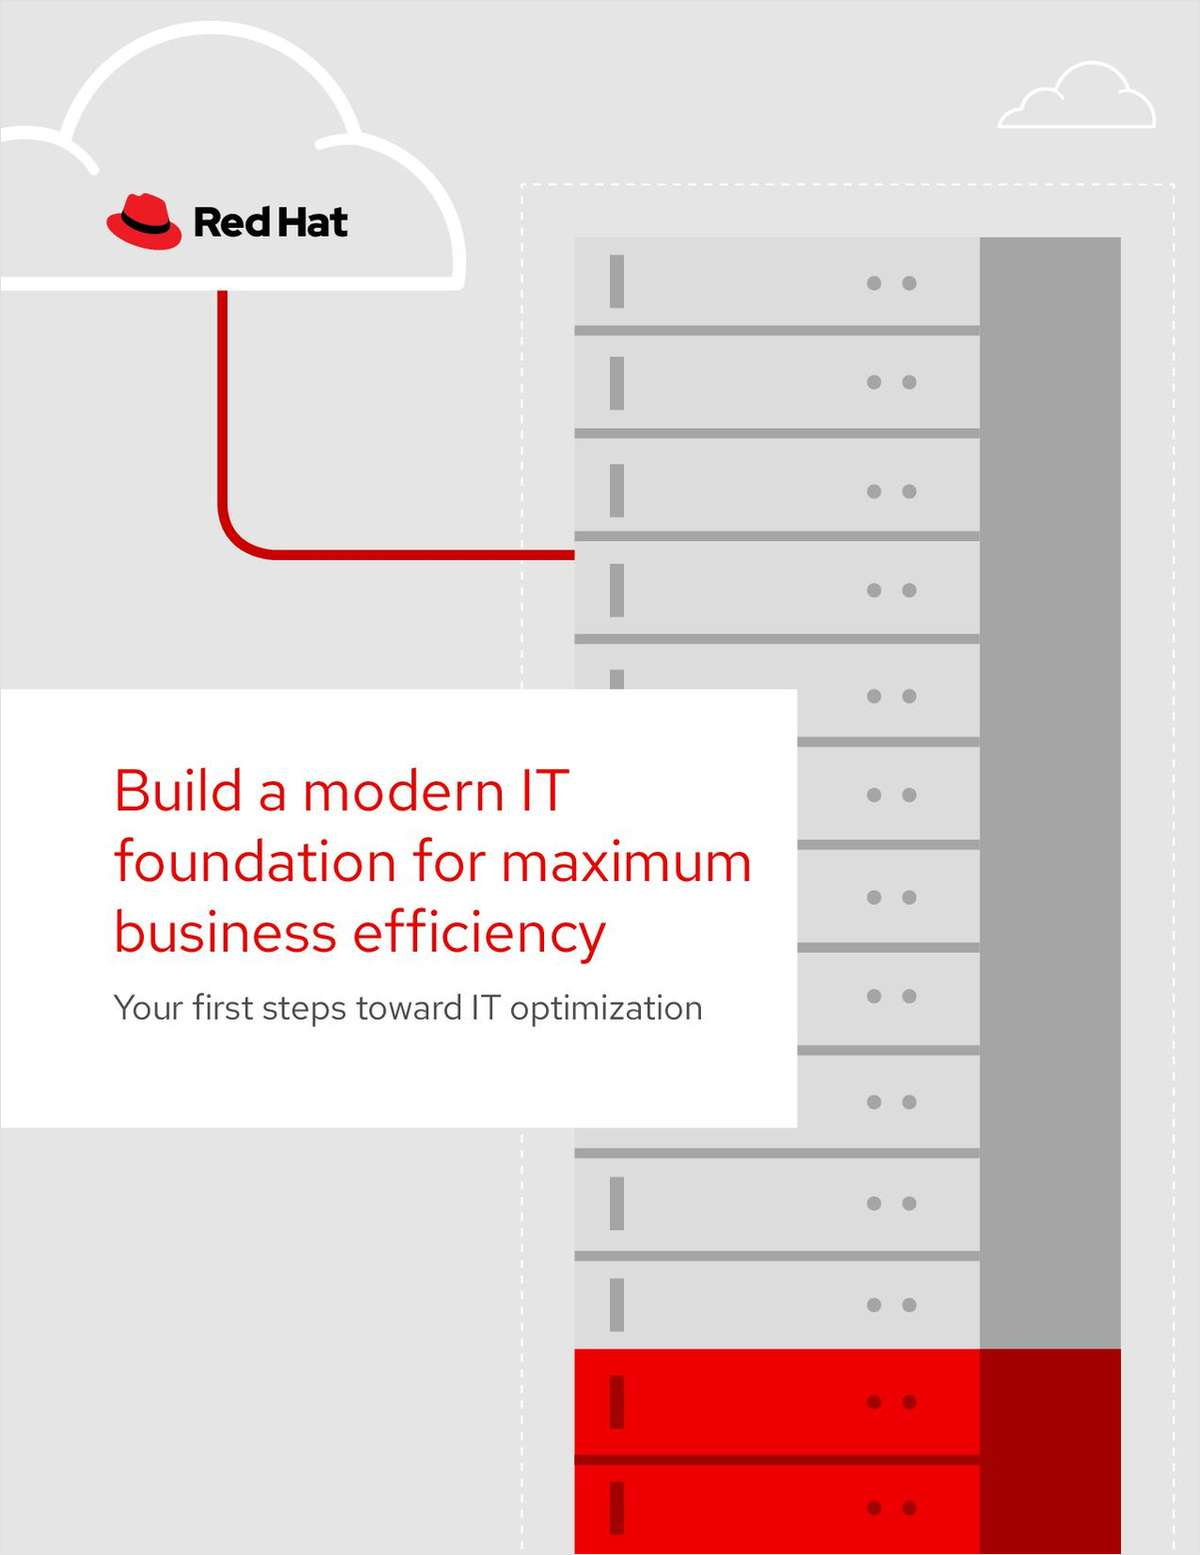 Build a modern IT foundation for maximum business efficiency